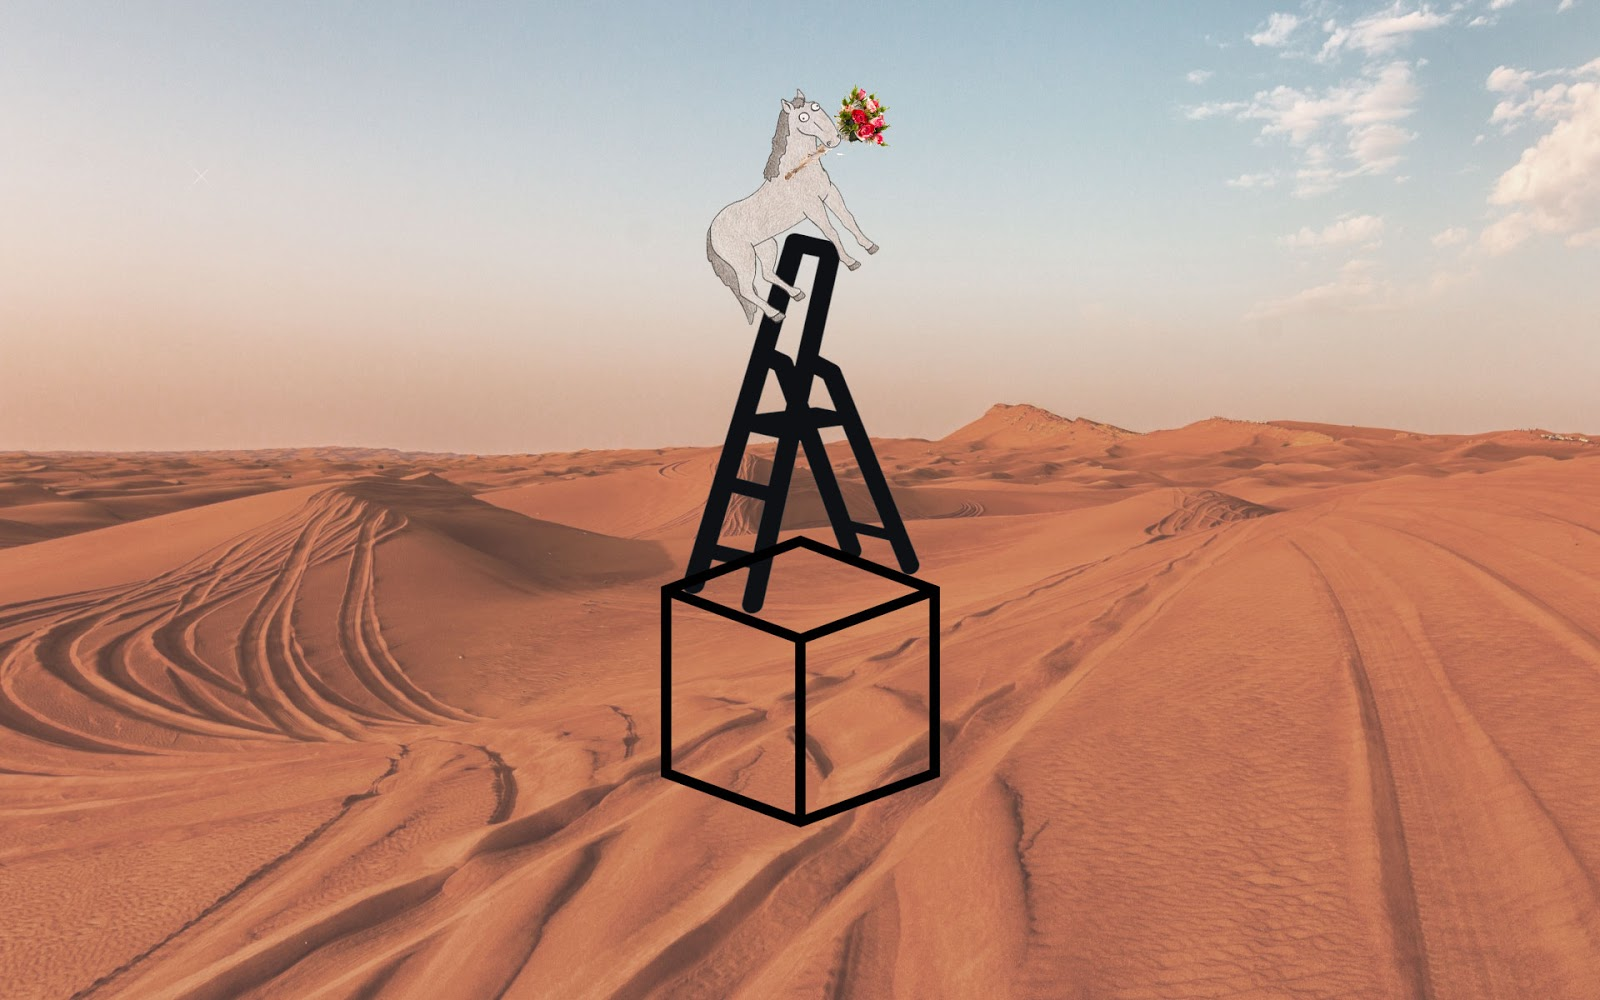 Cube in the desert